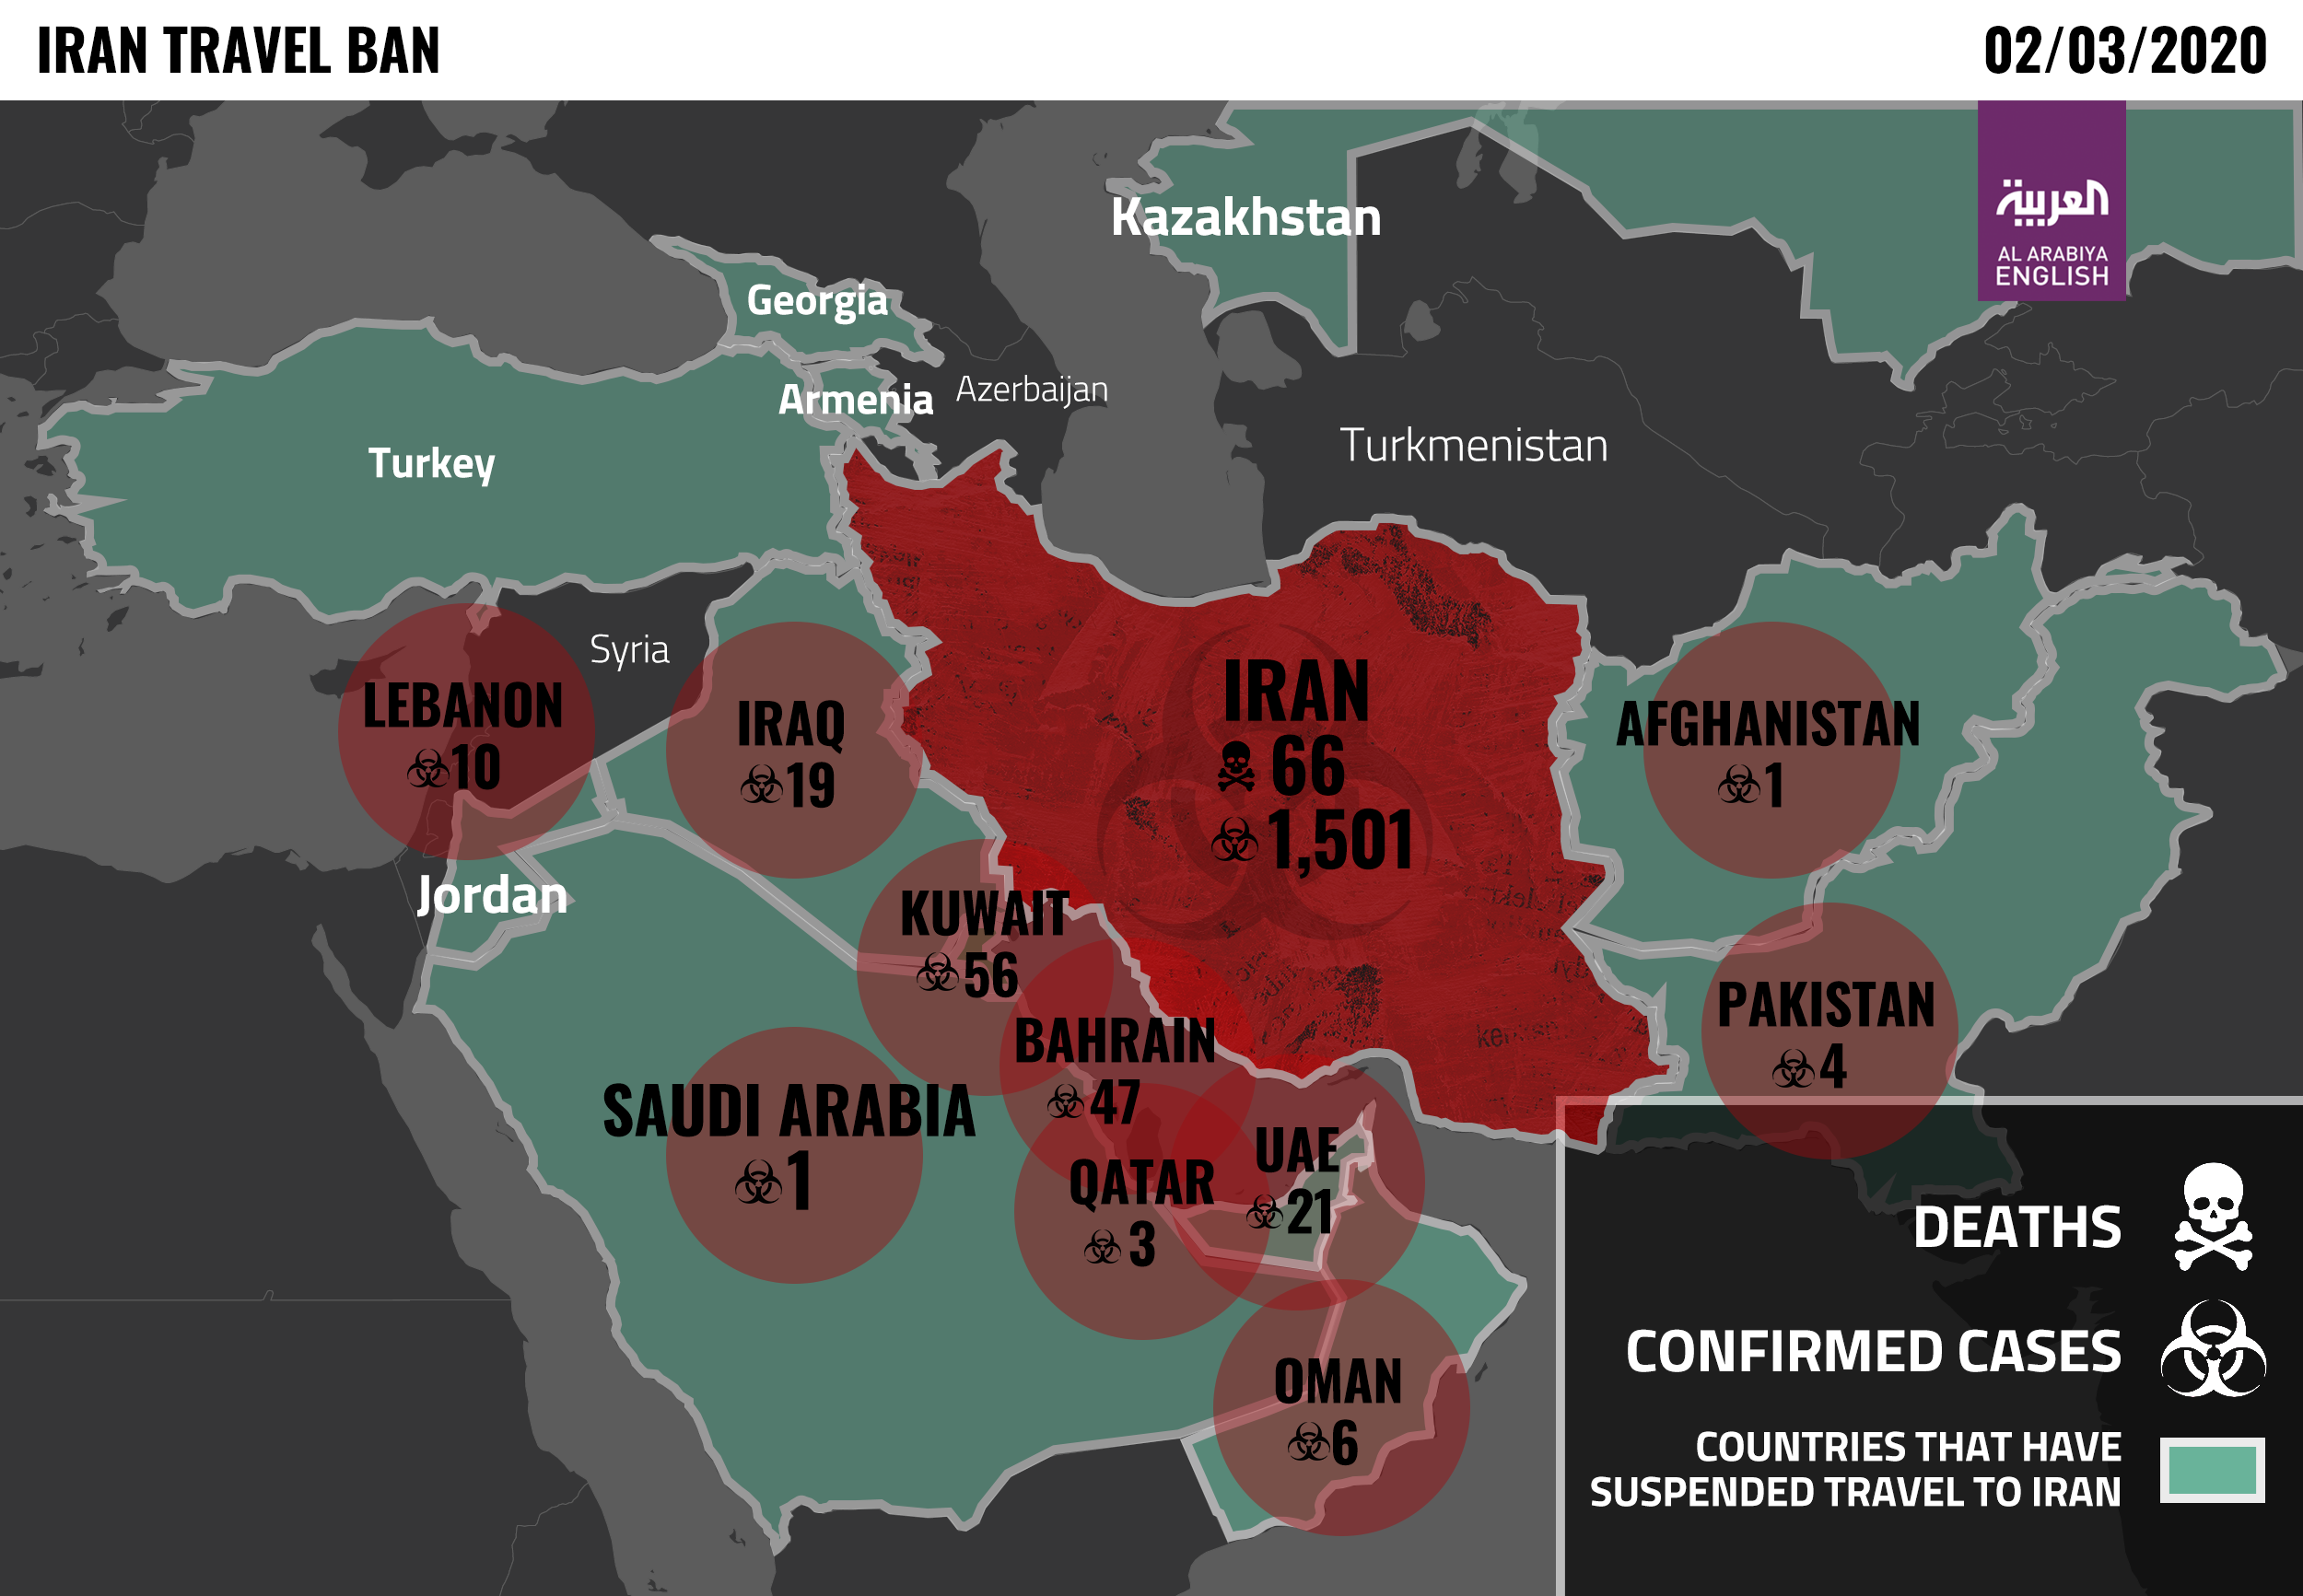 Iran travel ban infographic 02/03/2020_Saudi Arabia